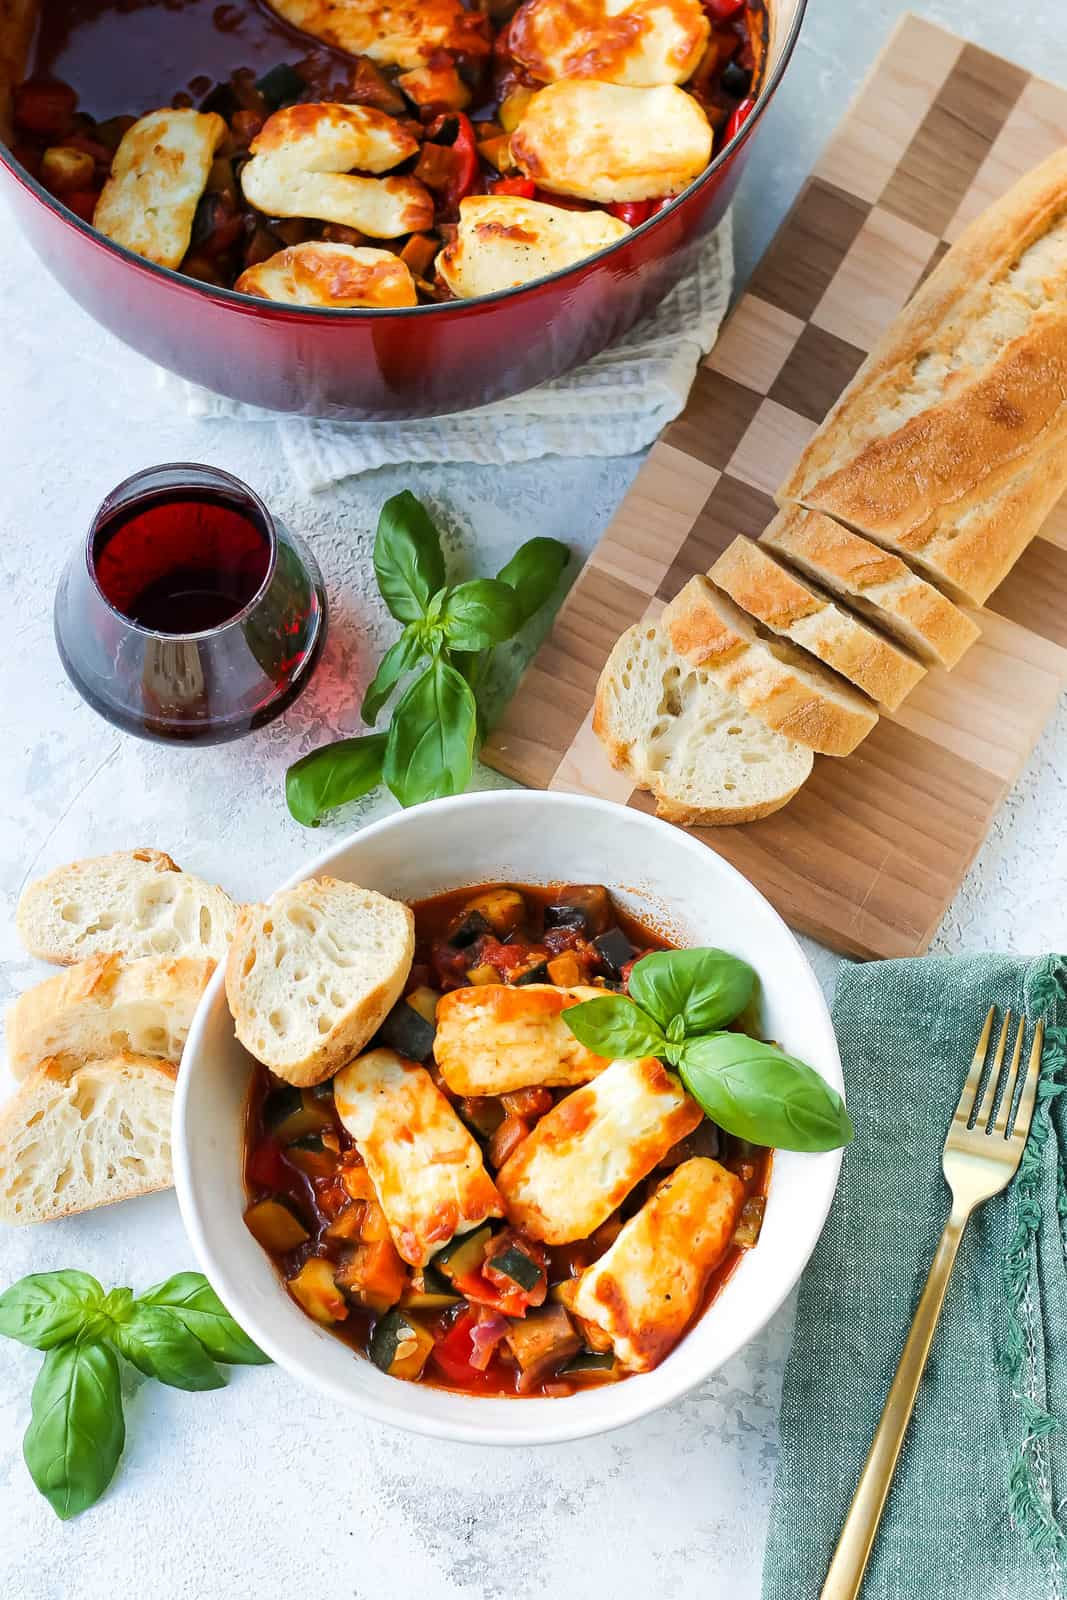 overhead photo of baked halloumi with vegetable ratatouille in a white bowl with a sliced baguette and a glass of red wine on a grey surface